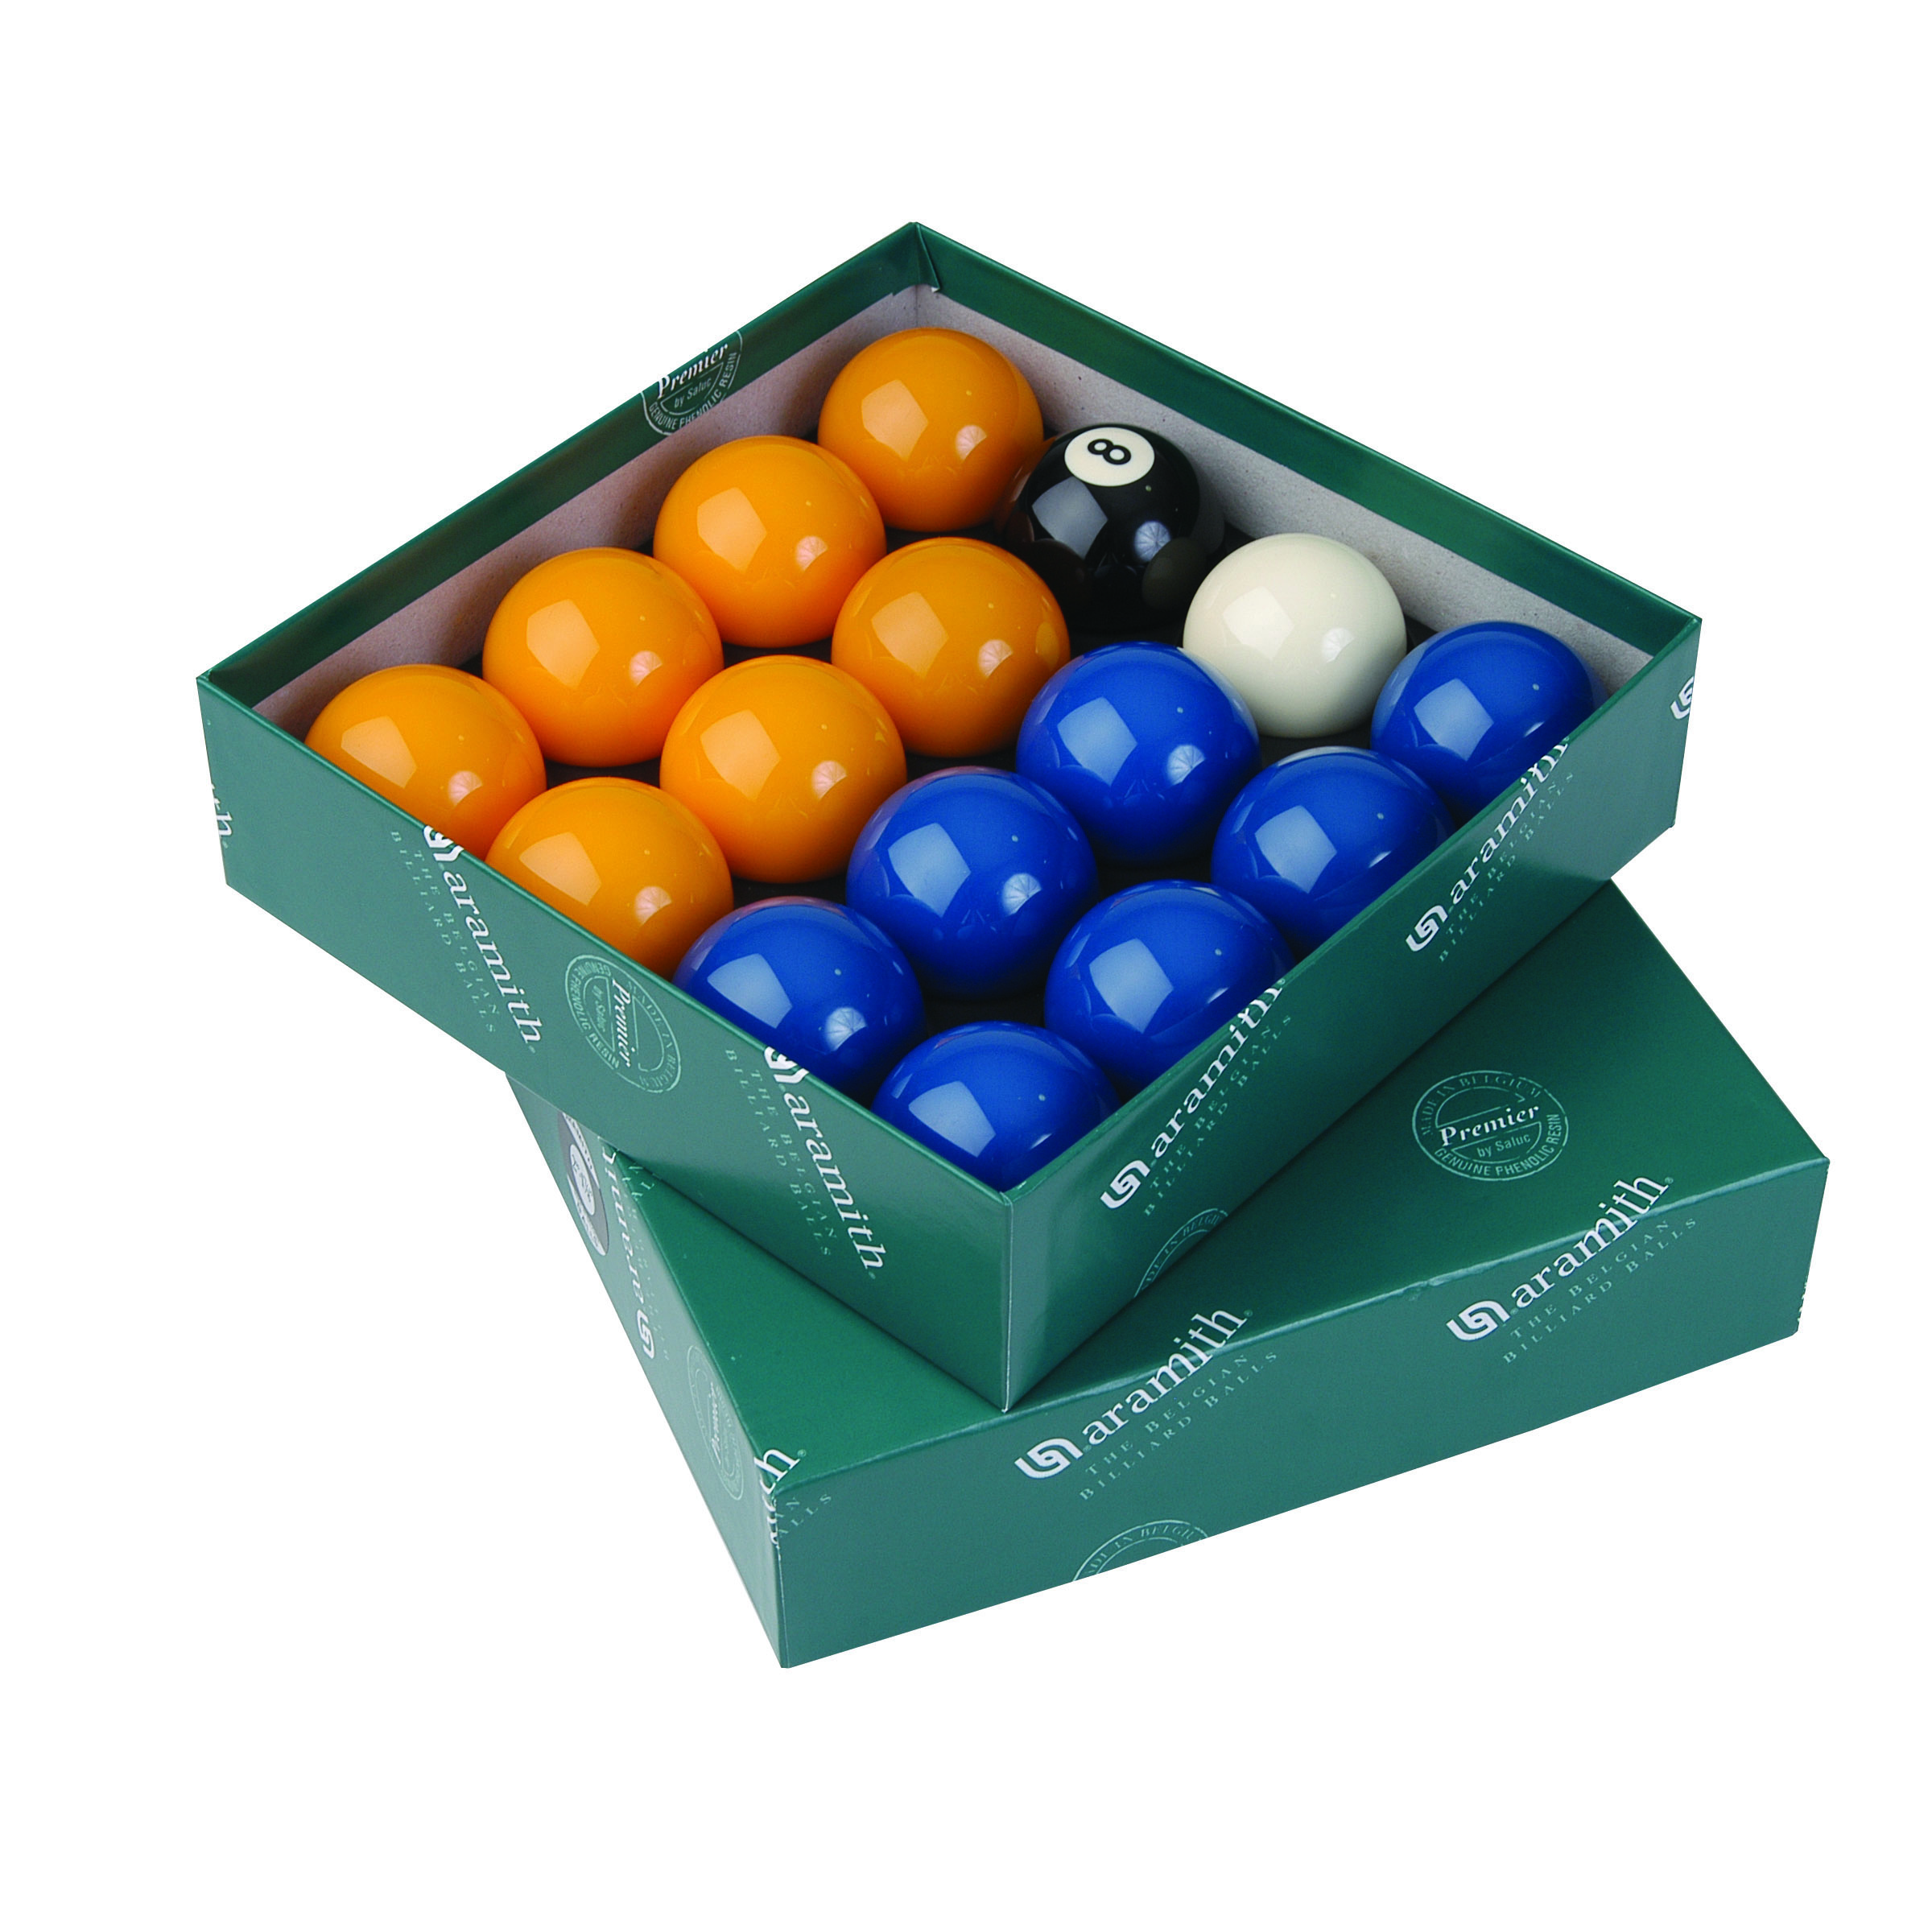 Aramith Premier Red-Yellow 2 Pool Balls with 1 7//8 Pro Cup Cue Ball